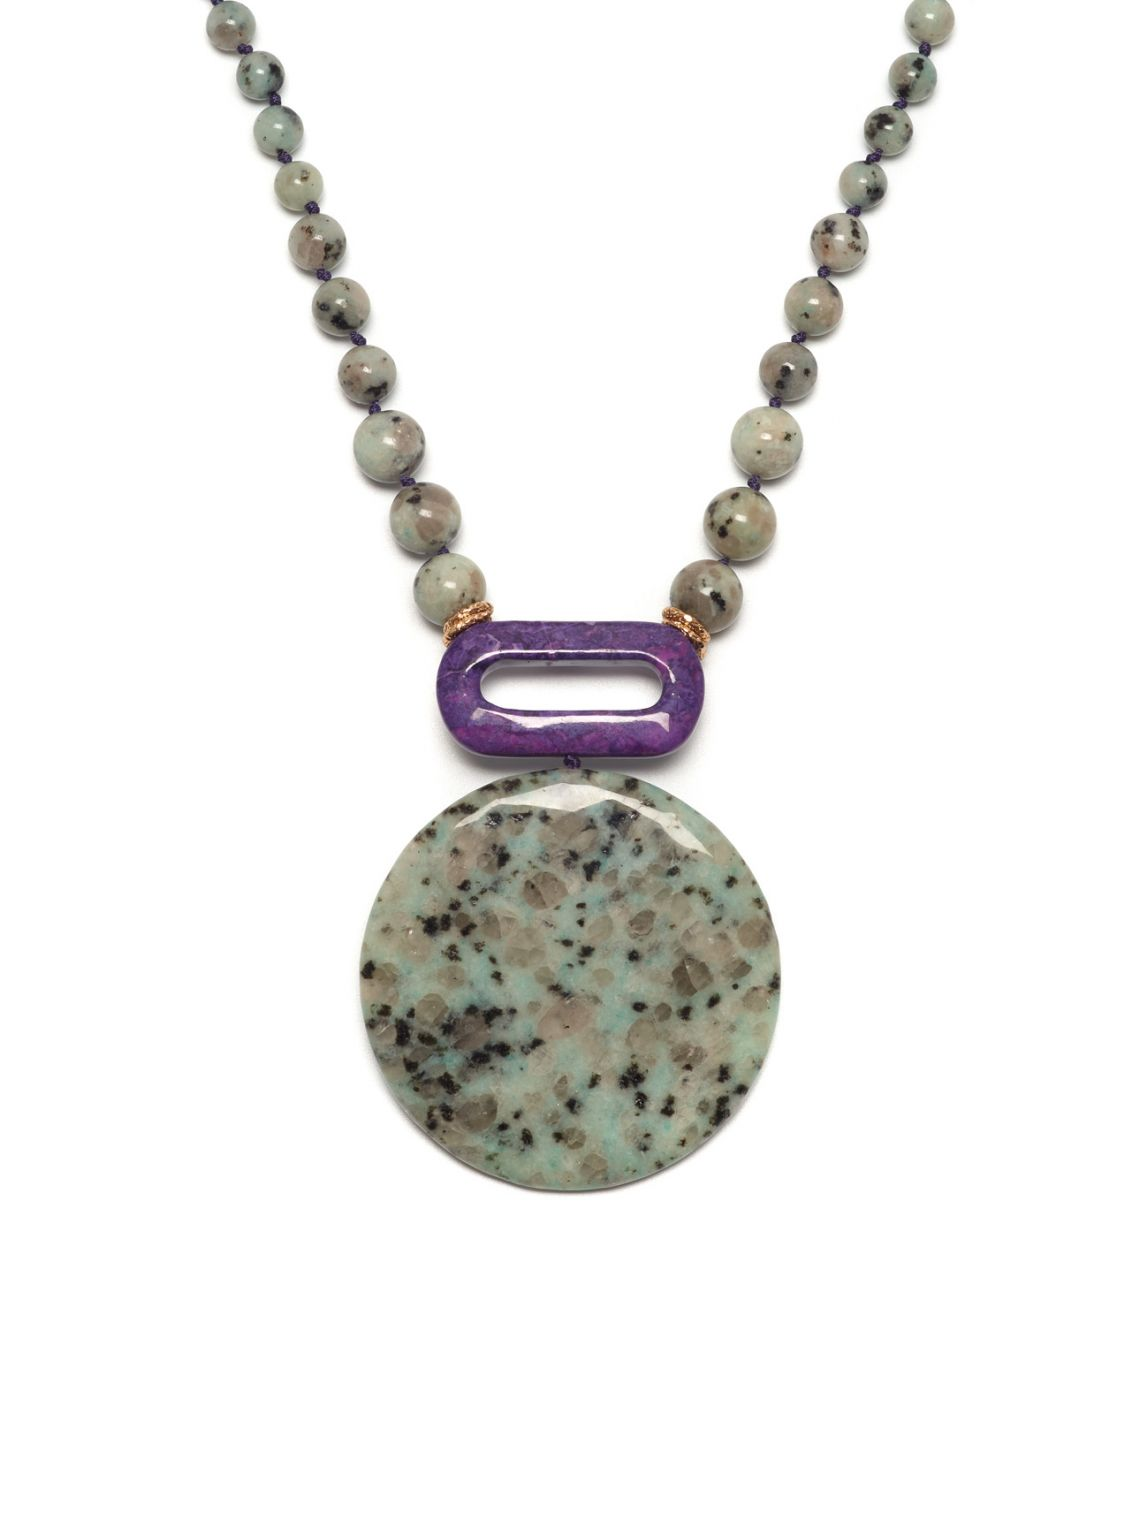 Tiree Necklace